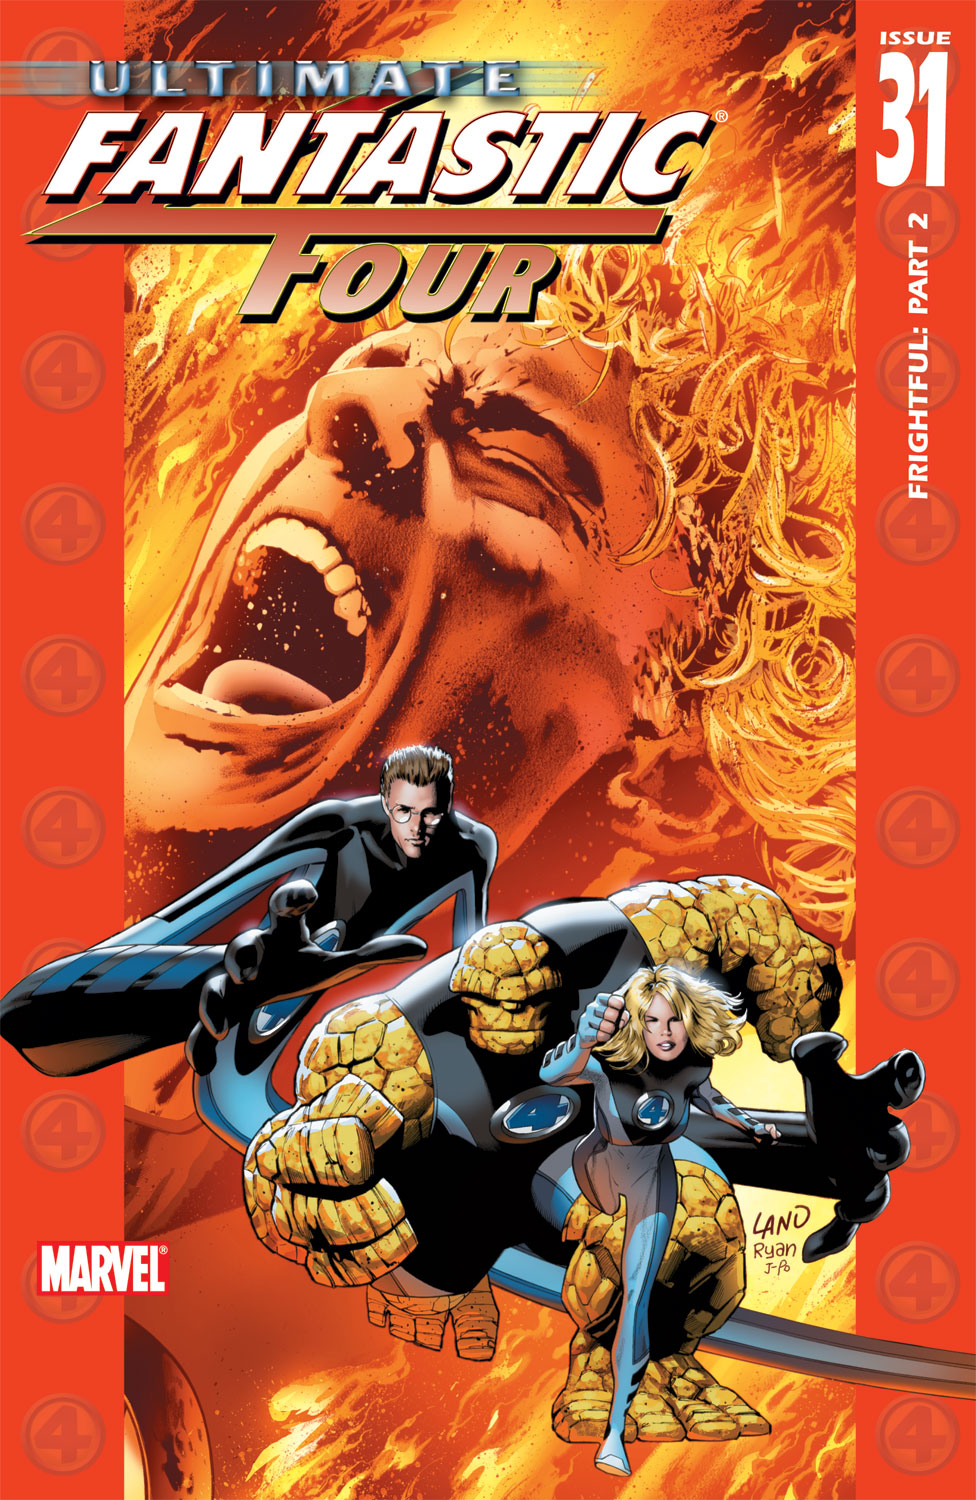 Read online Ultimate Fantastic Four (2004) comic -  Issue #31 - 1